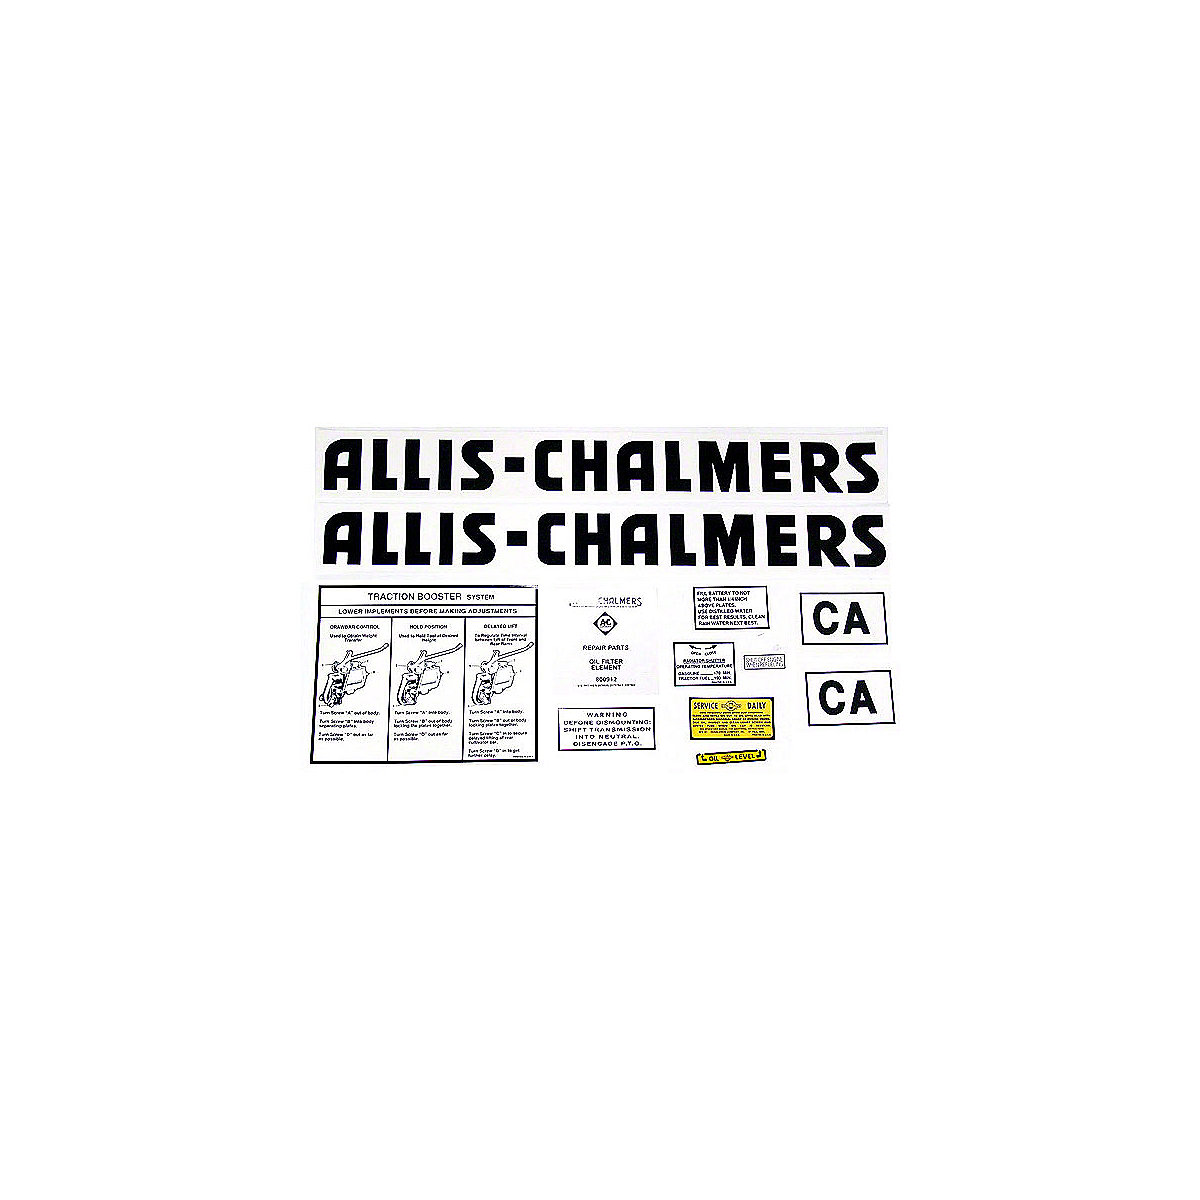 Decal Set For Allis Chalmers: CA